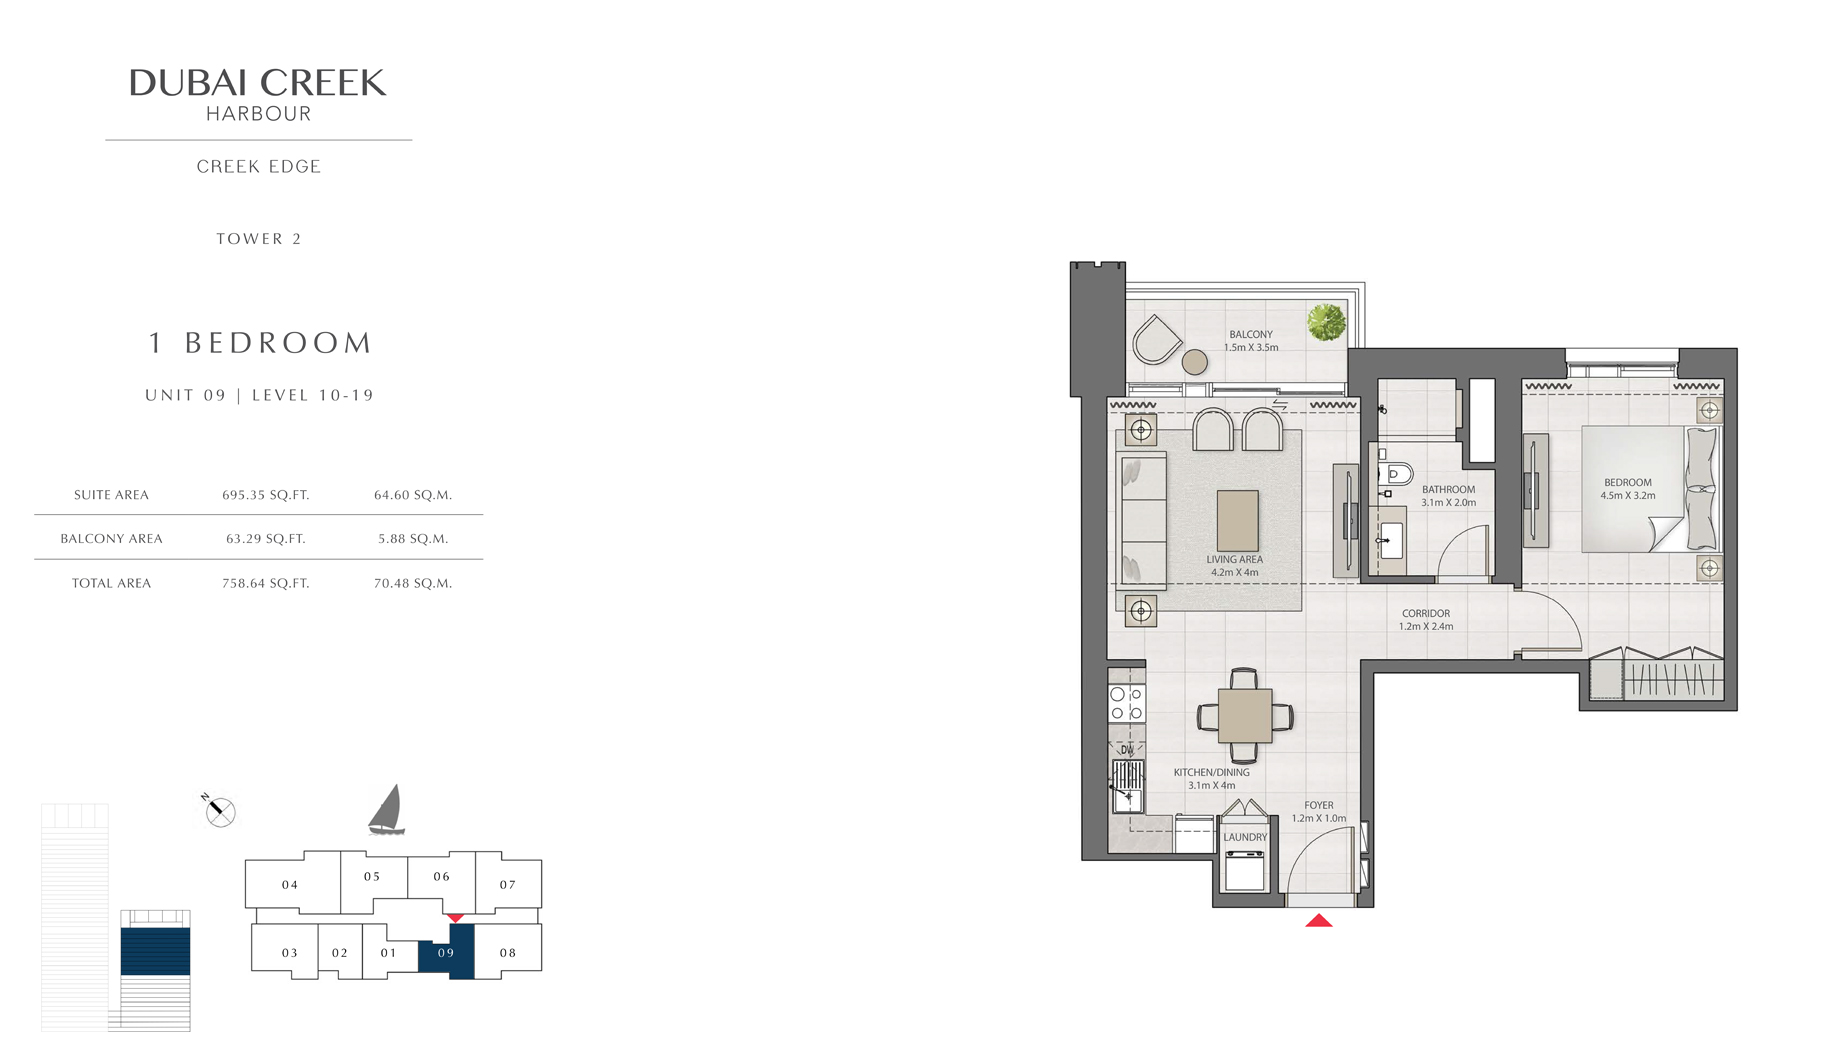 1 Bedroom Tower 2 Unit 09 Level 10-19 Size 758 sq.ft